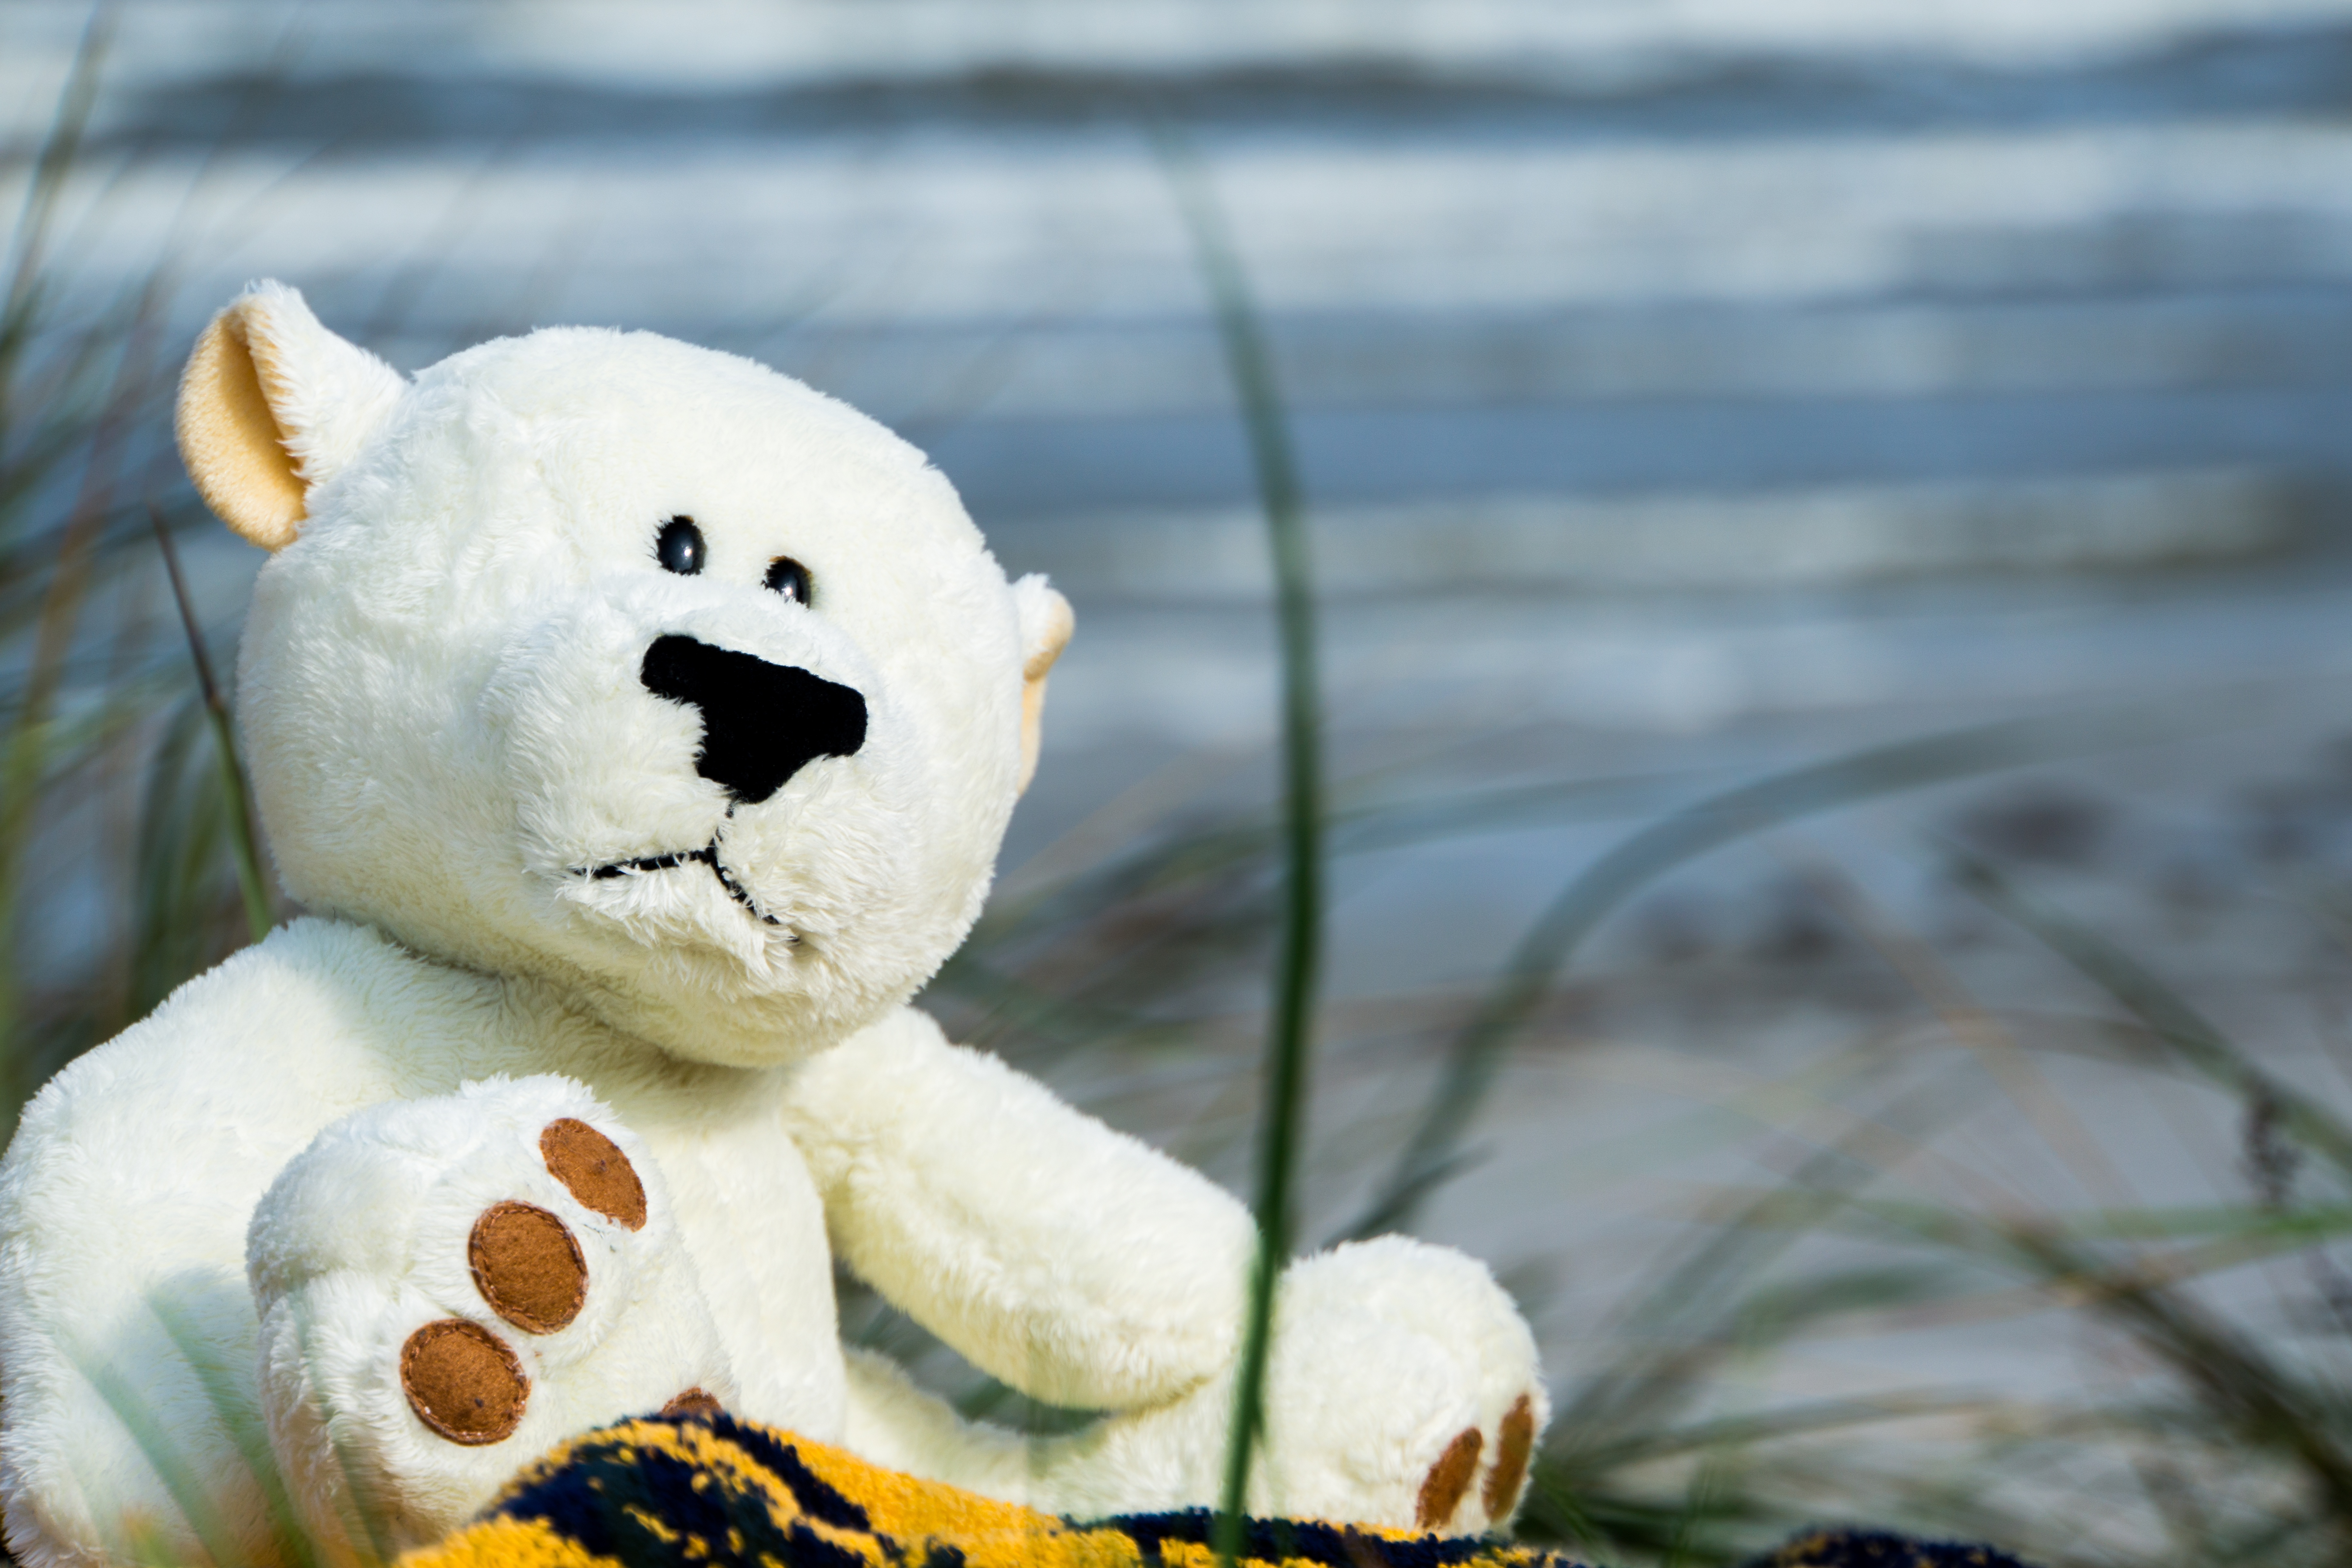 beach-water-snow-white-flower-bear-holiday-blue-toy-teddy-bear-background-snowman-bears-funny-plush-teddy-giant-panda-stuffed-toy-672137.jpg (1)